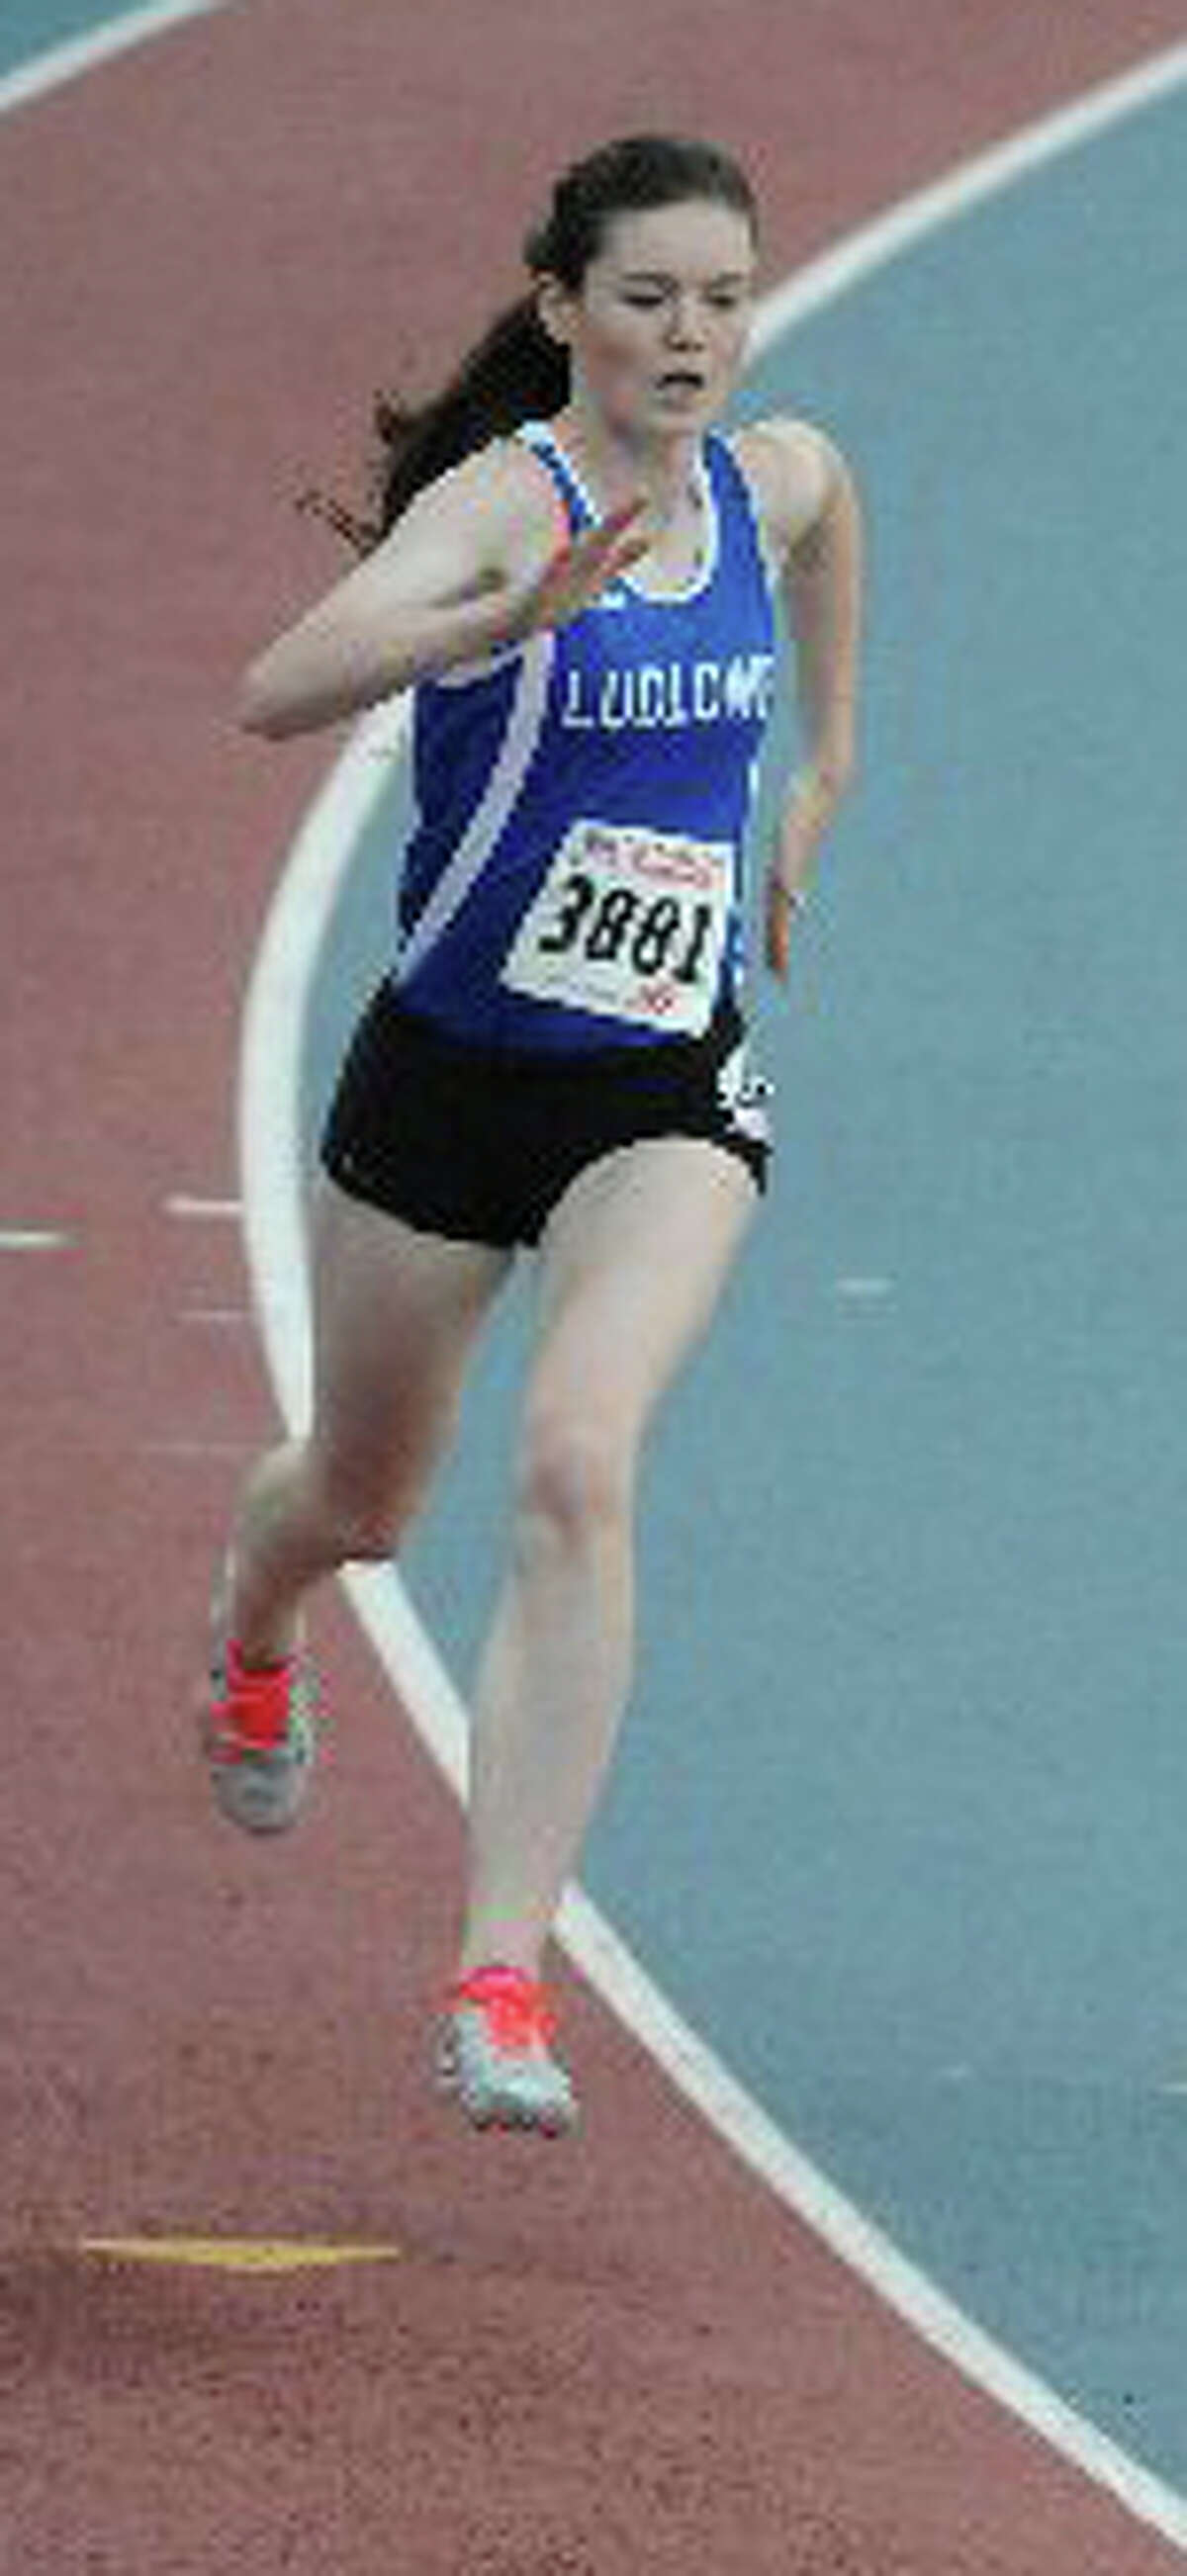 Ludlowe's Emma Koether won the 300-meter run in the Class LL Championships, finishing with a time of 41.27 seconds and placed third in the State Open, timing in at 41.35 seconds.